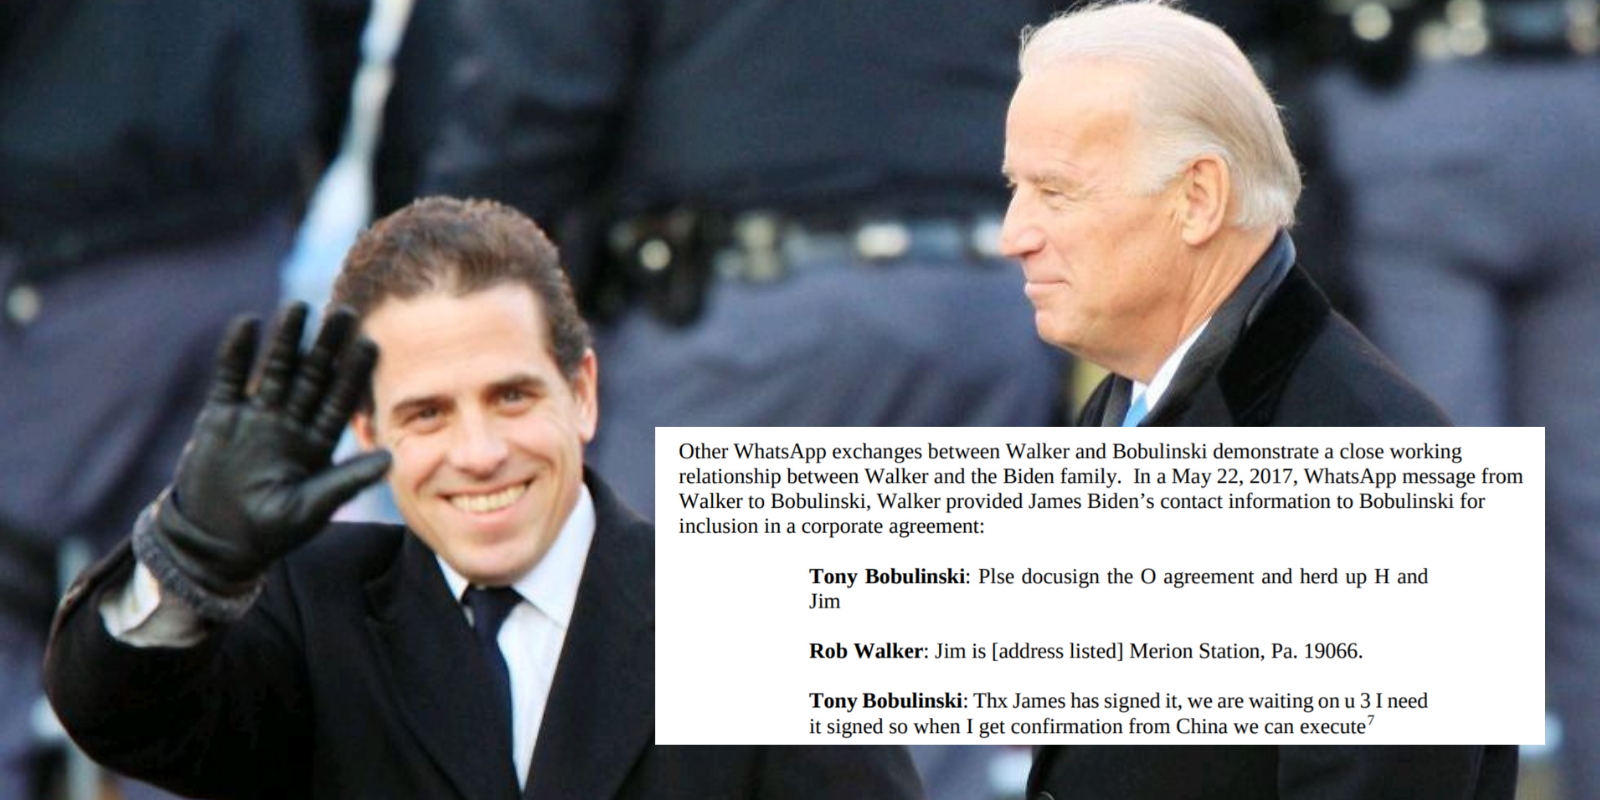 New Senate findings 'confirm the connections' between Biden family and Chinese, Russian governments